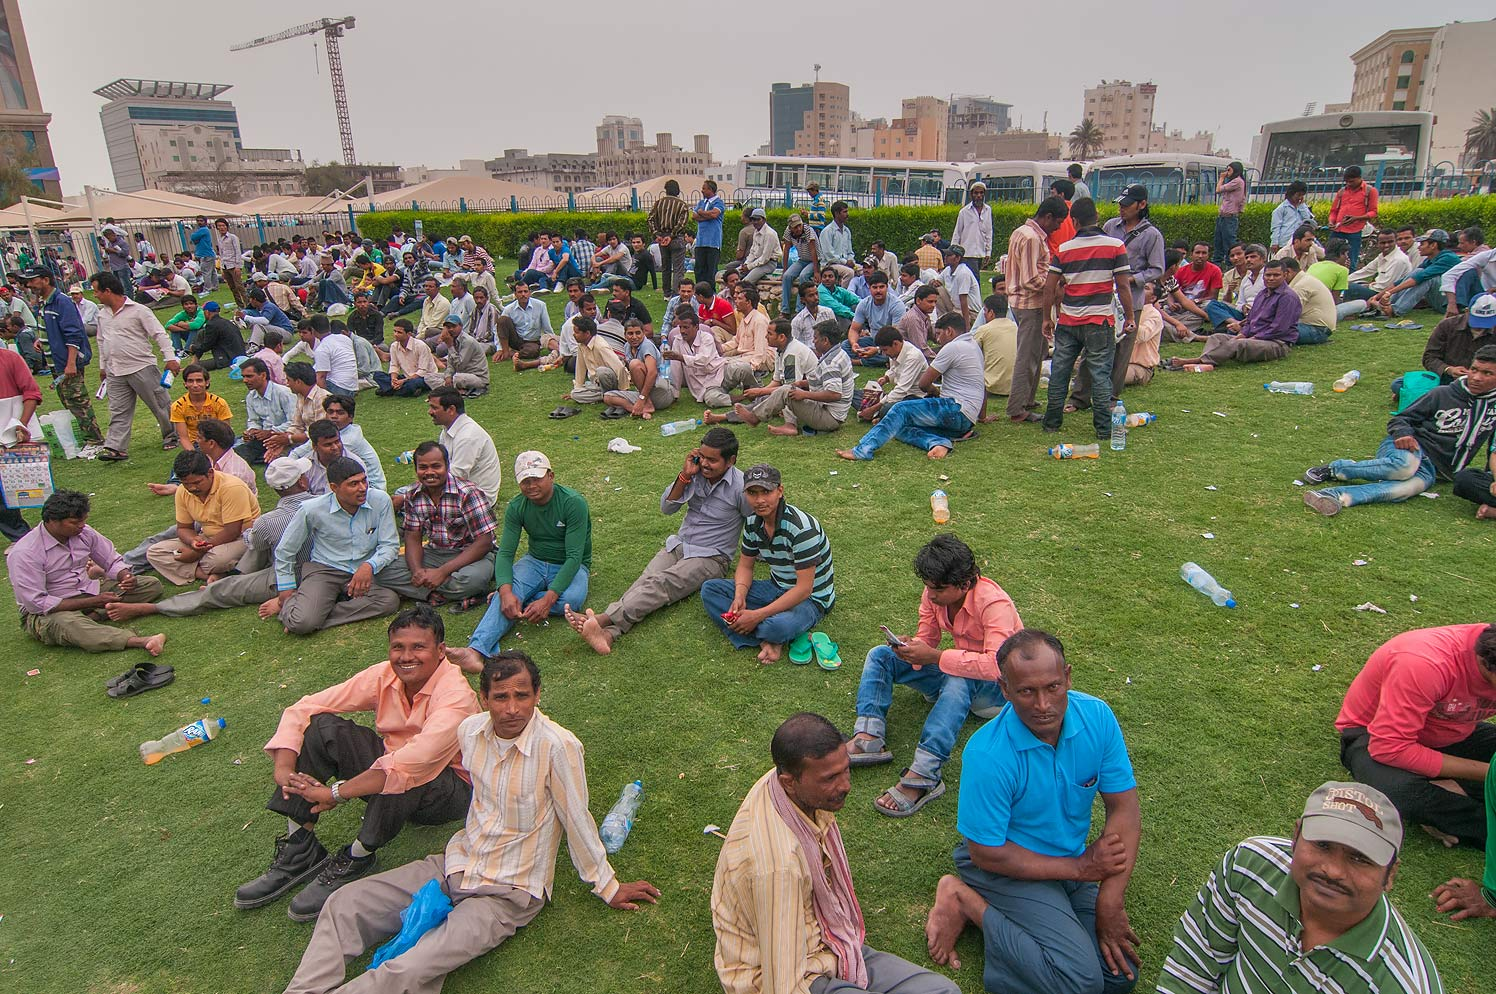 Crowds of migrant workers gathering near Central Bus Station Al Ghanim. Doha, Qatar